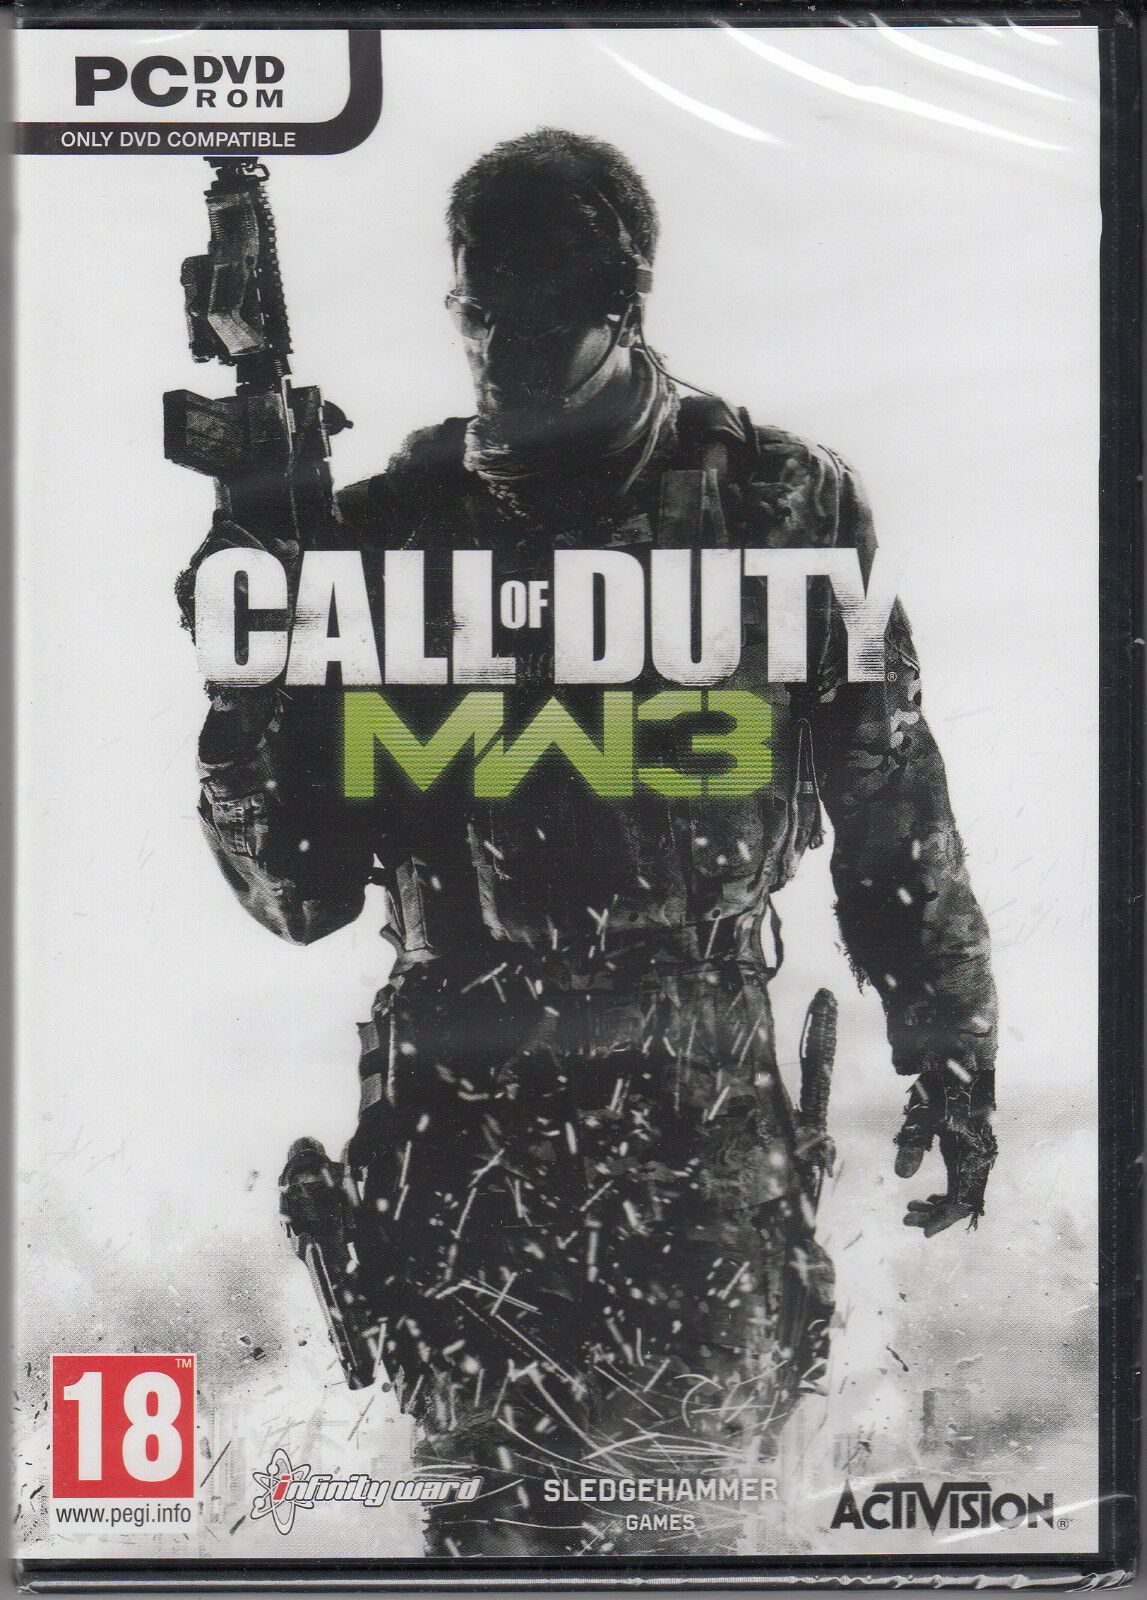 Call Of Duty Modern Warfare 3 Pc Brand New Sealed Cod Mw3 1999 Sony Playstation 4 Ps4 Limited Edition Non Dvd 1 2free Shipping